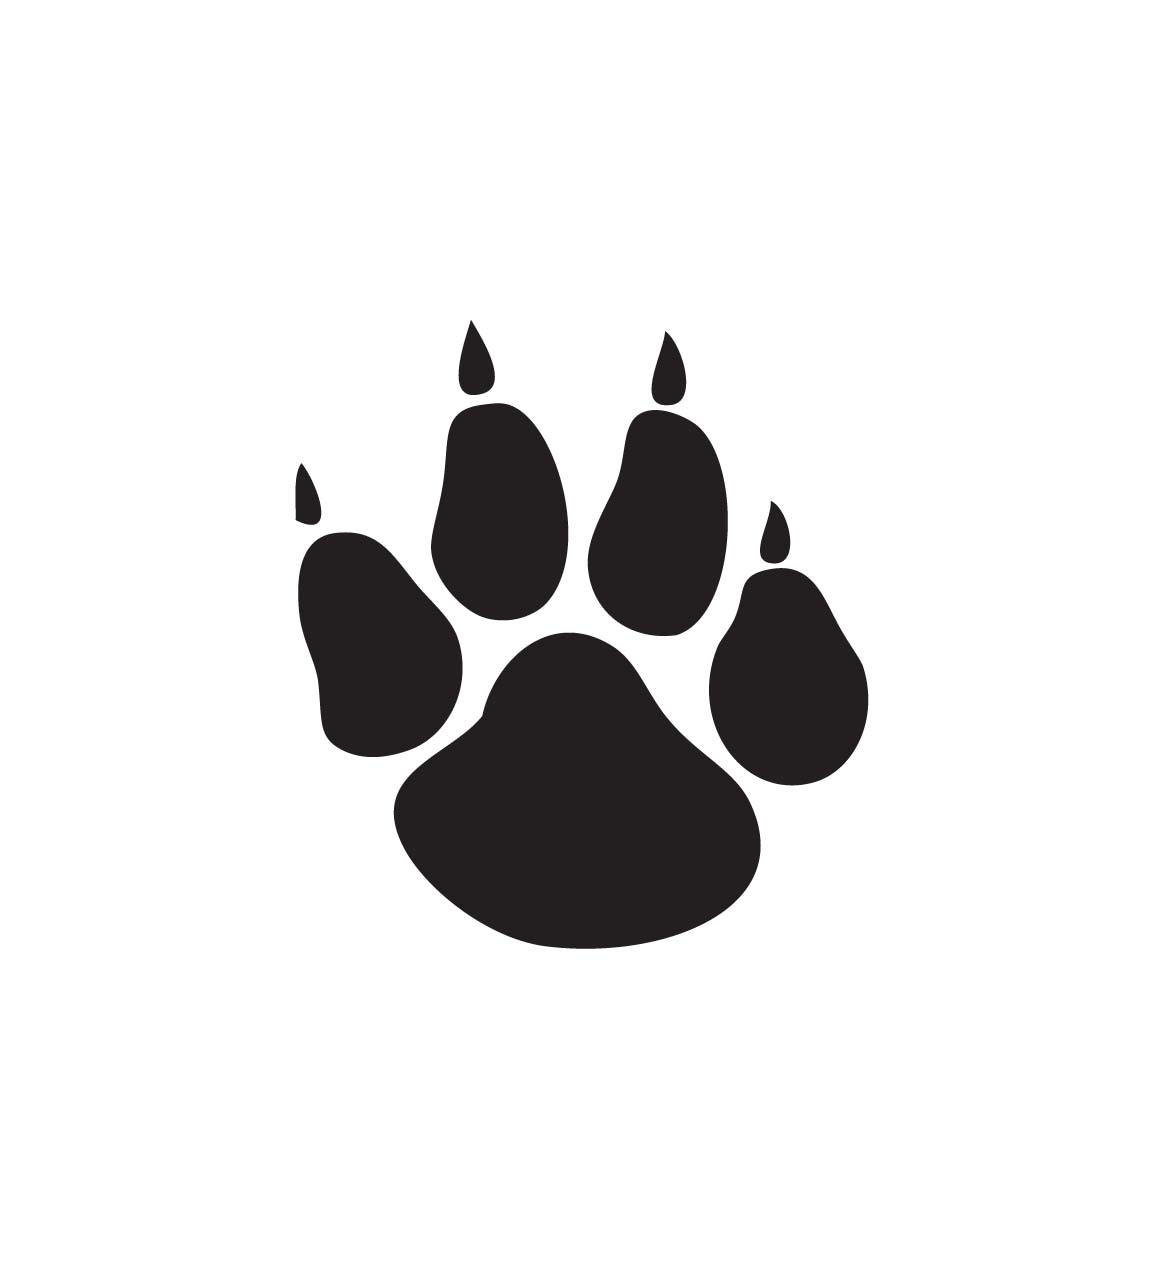 dog paw silhouette at getdrawings com free for personal use dog rh getdrawings com paw clip art free paw clip art free